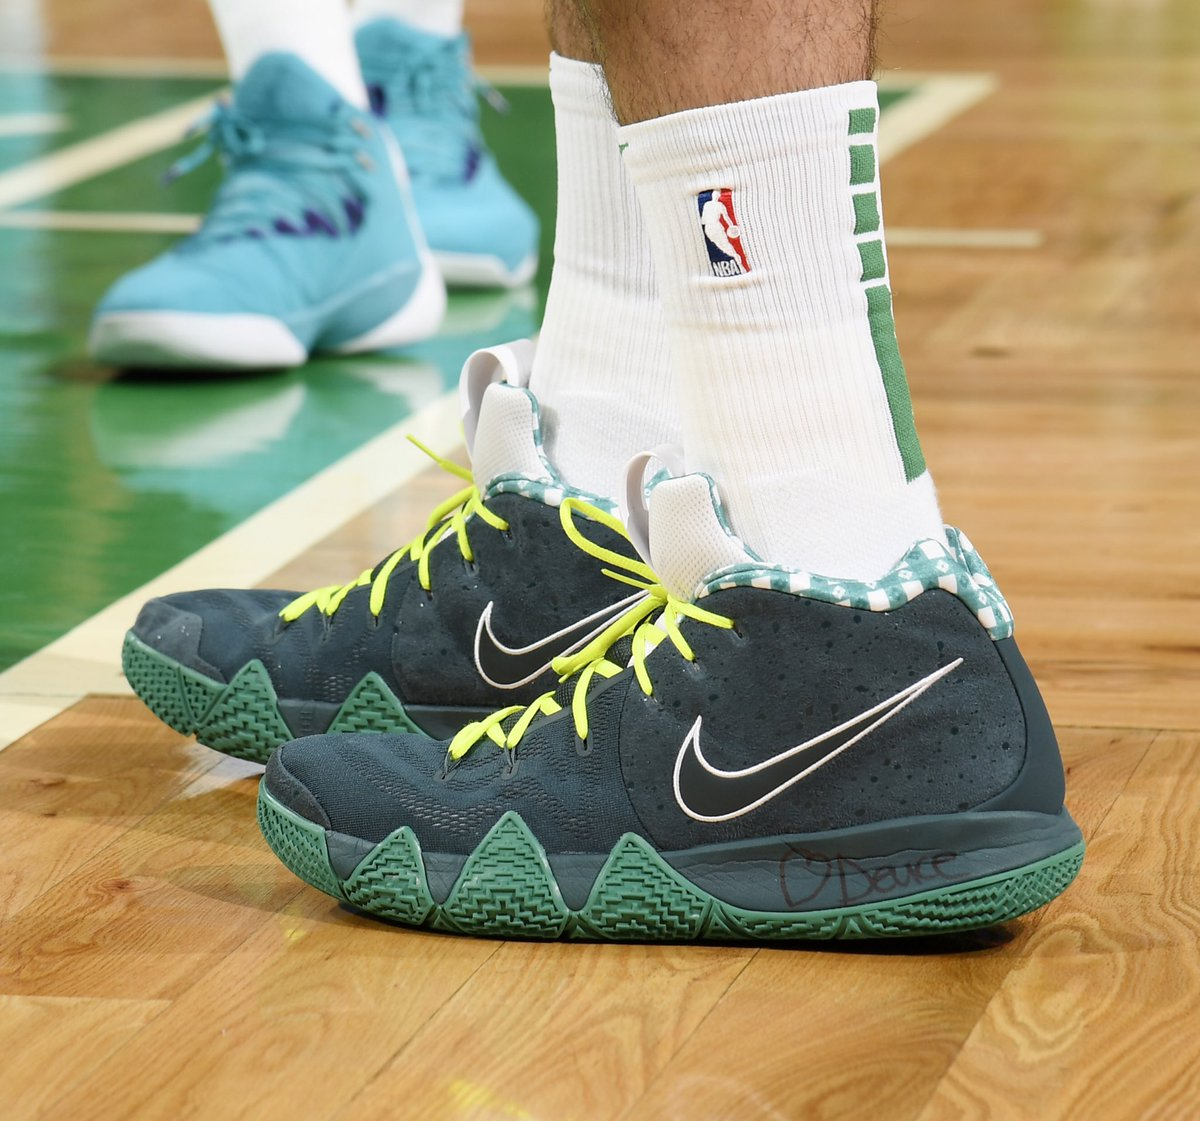 solewatch jaytatum0 wearing the green lobster cncpts x nike kyrie 4  babsphoto 7544147e2